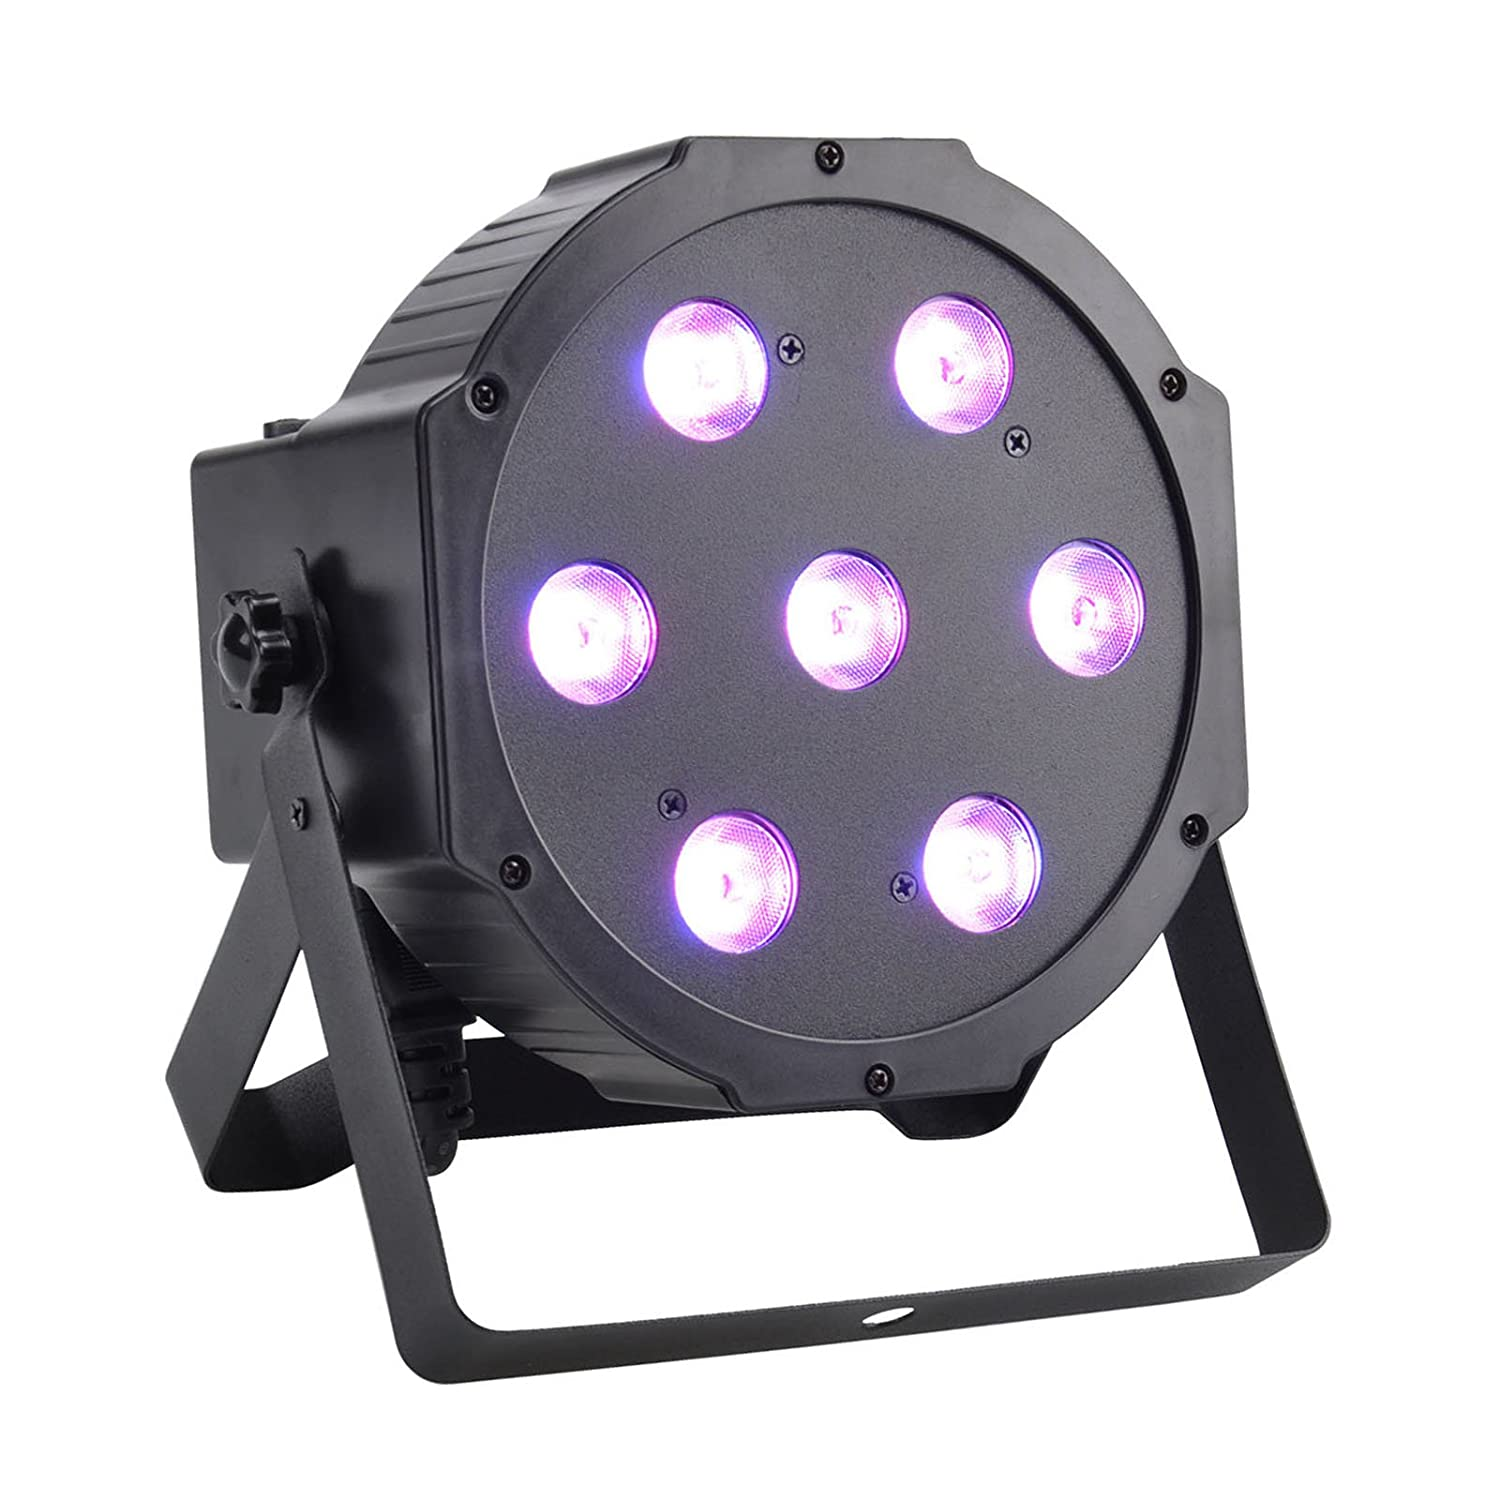 Amazon gbgs led up lighting rgbw led par lights 10w x 7 led dmx amazon gbgs led up lighting rgbw led par lights 10w x 7 led dmx 4 in 1 par can stage lighting super bright for wedding dj event party show musical arubaitofo Gallery